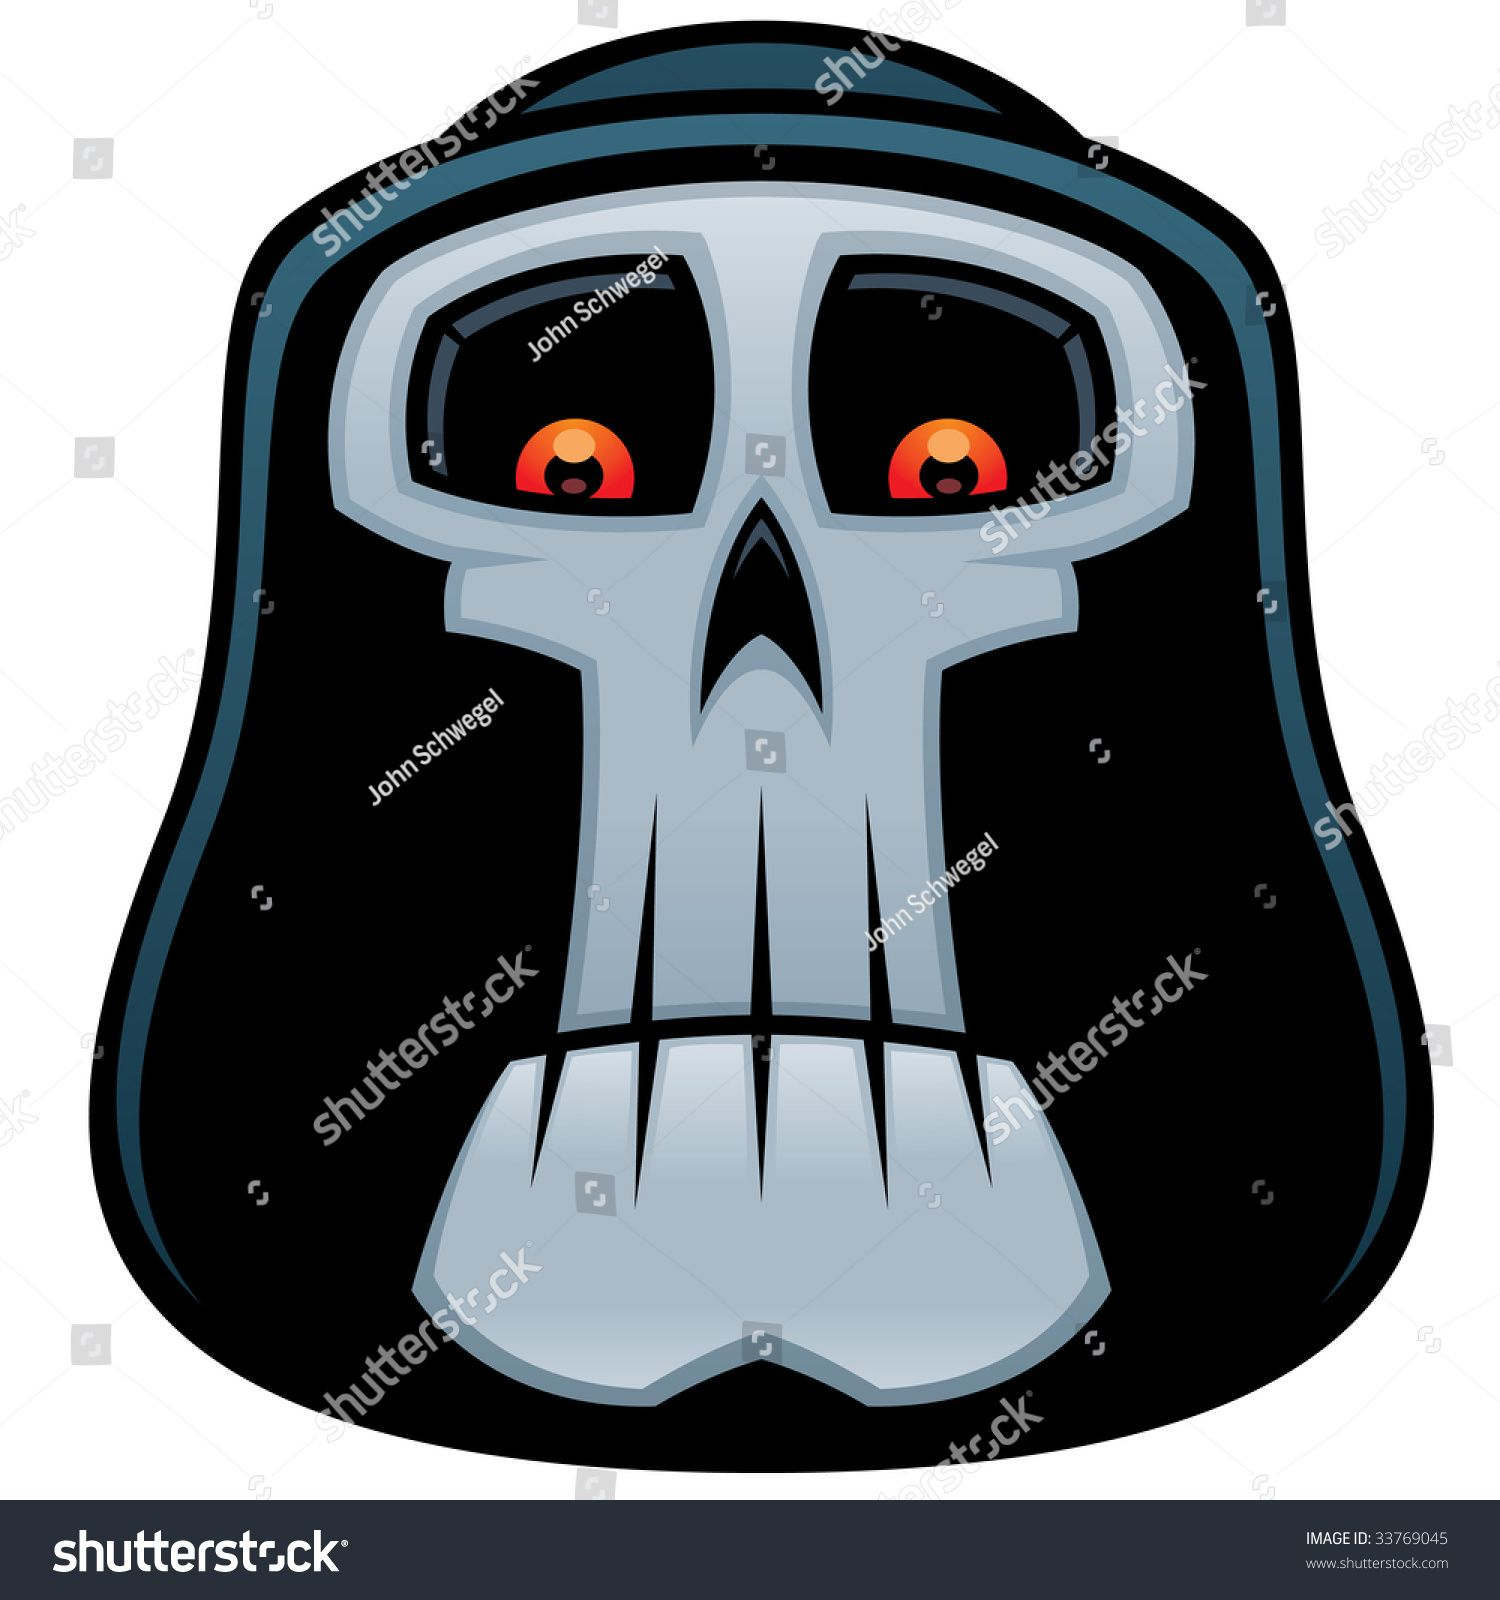 Vector cartoon illustration of the Grim Reaper. Angel of Death skull with red eyes and hood. #Ad , #ad, #Grim#Reaper#illustration#Vector